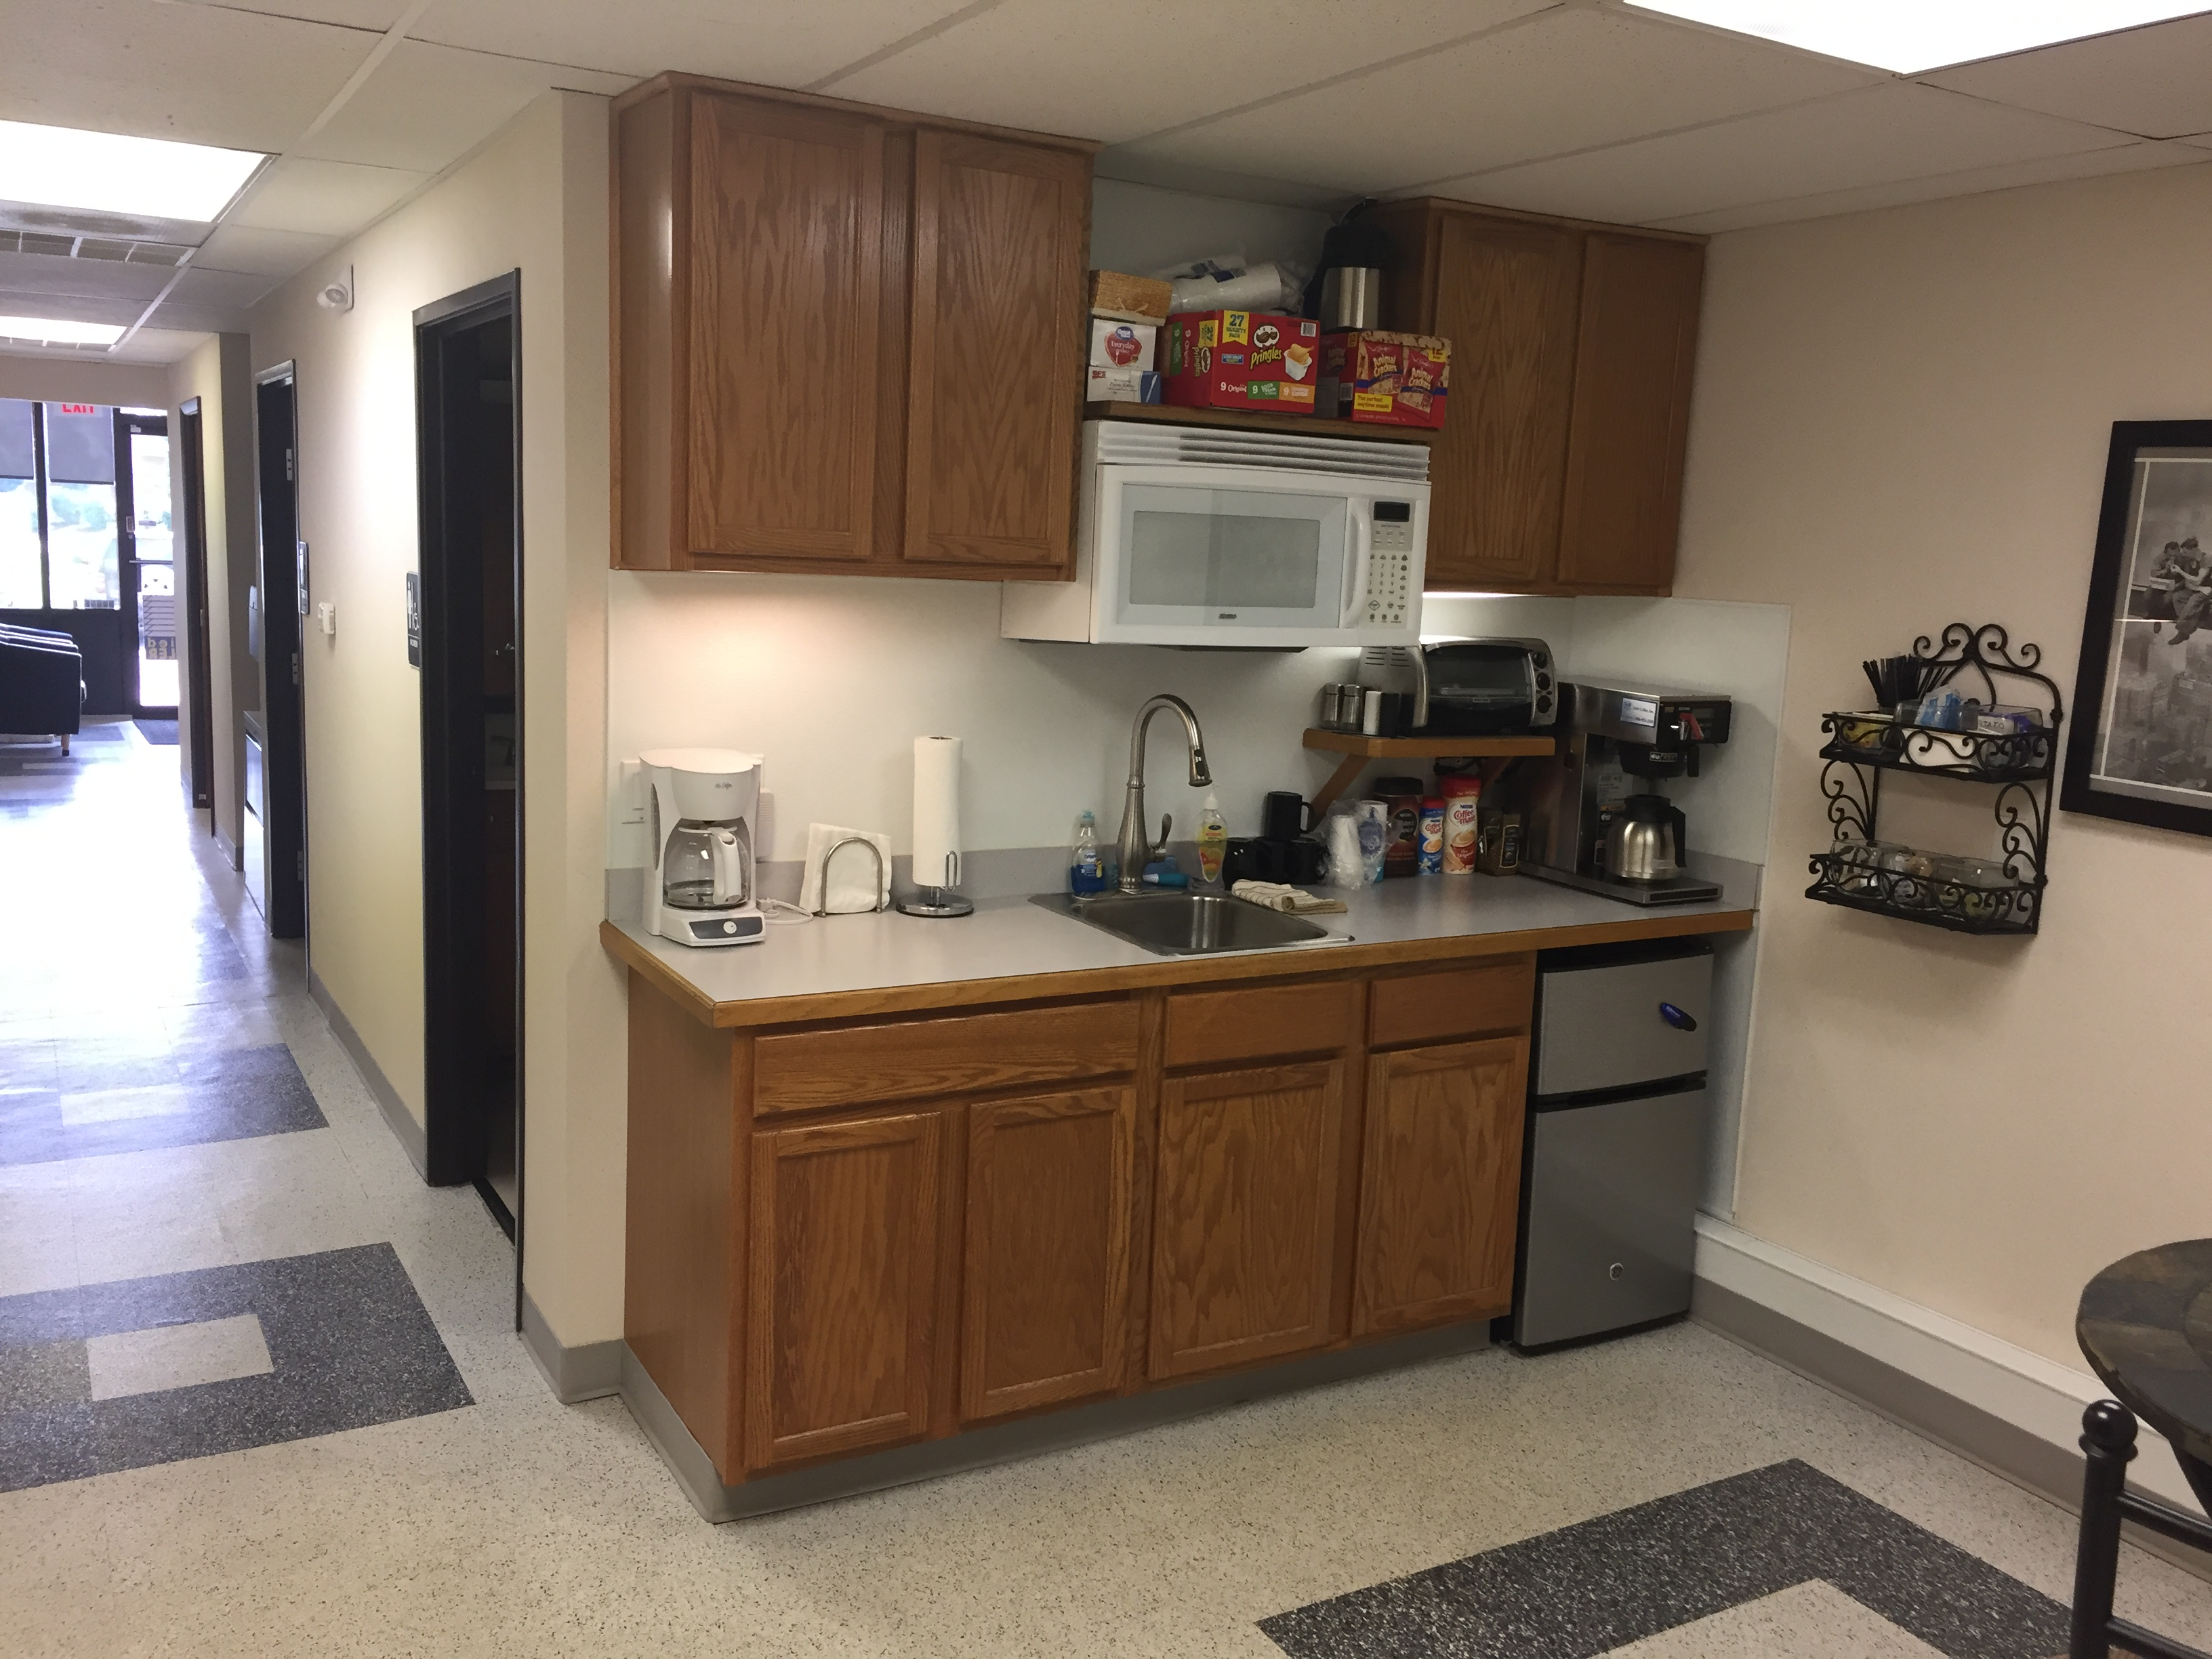 Blind Cleaning Services Kitchenette